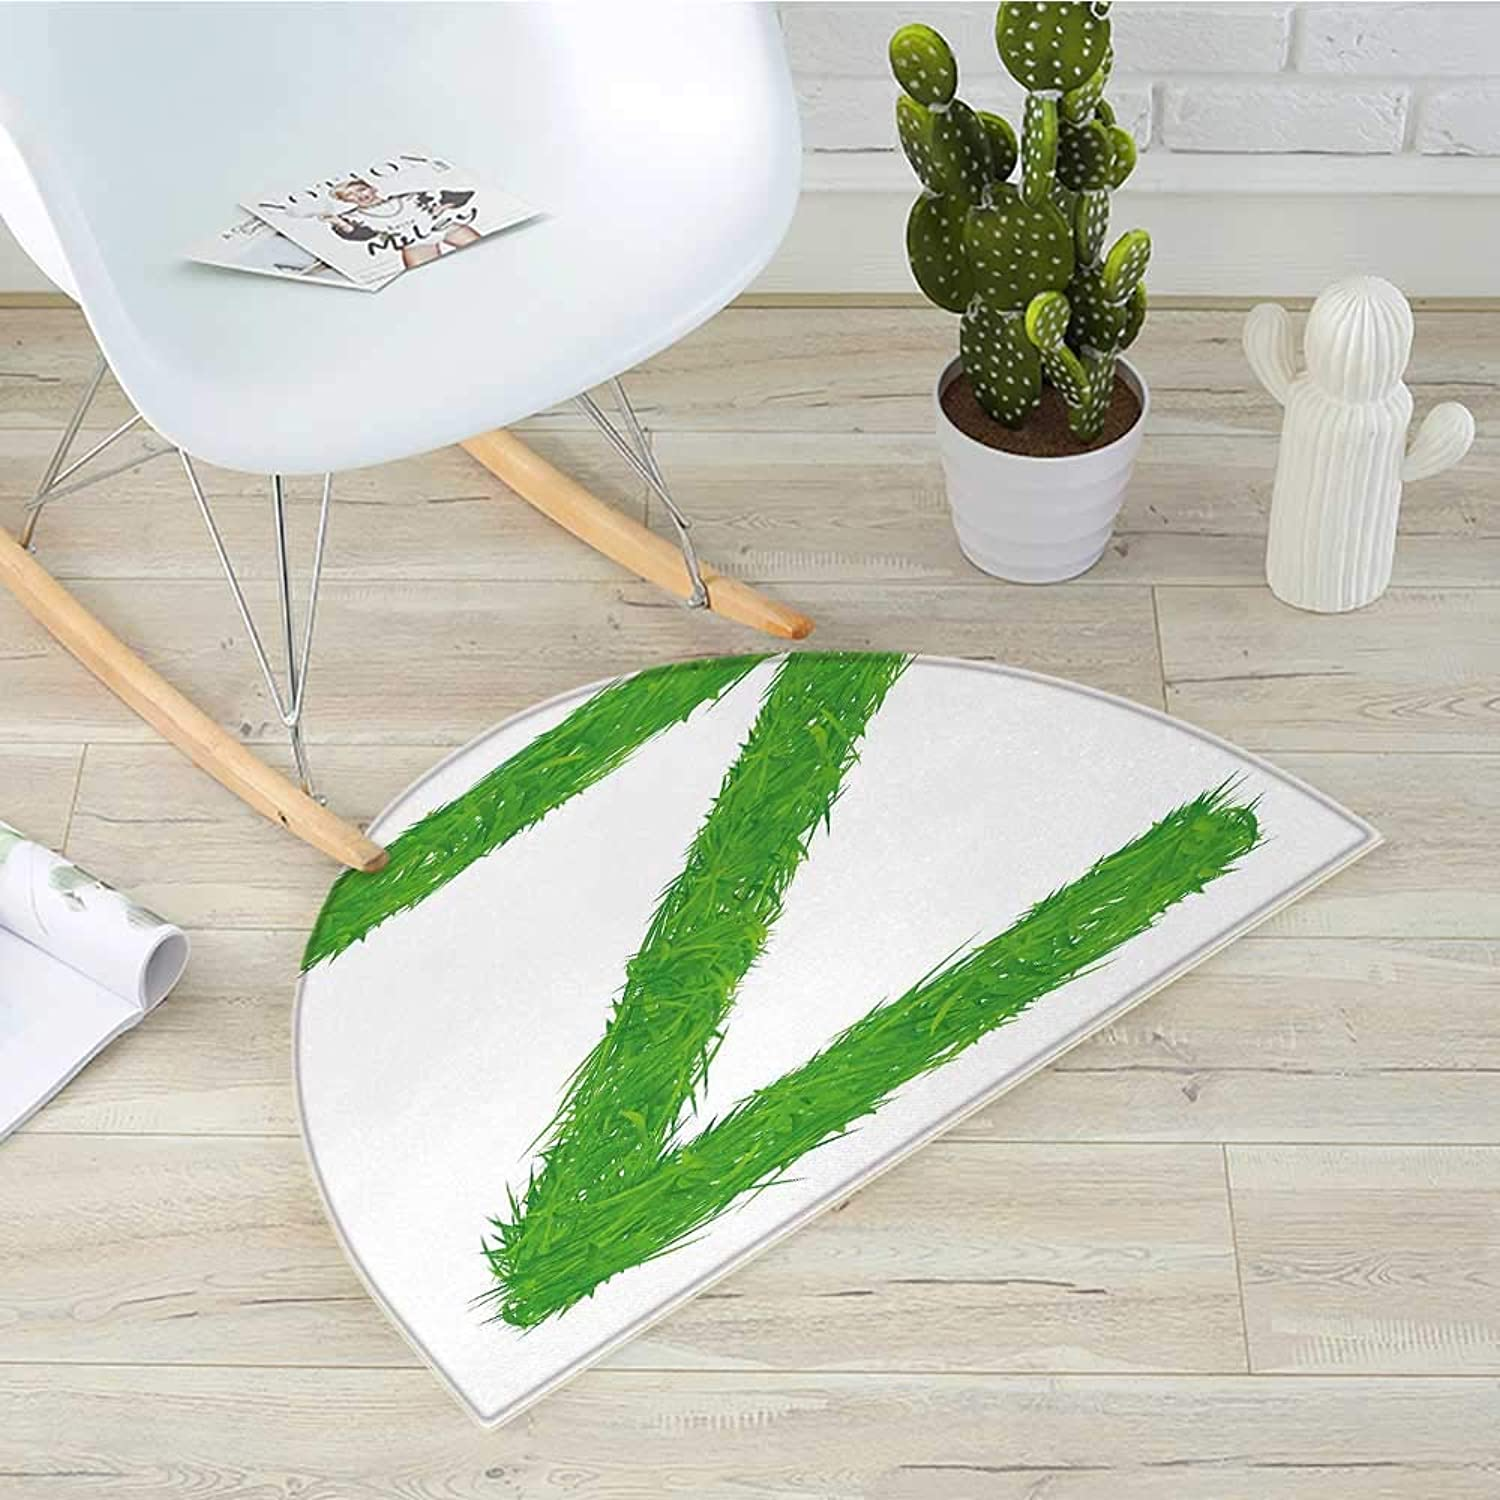 Letter Z Semicircle Doormat Spring Capital Z Made Out of Grass Ladybug Butterfly Daisy Chamomile Flowers Halfmoon doormats H 35.4  xD 53.1  Green Multicolor